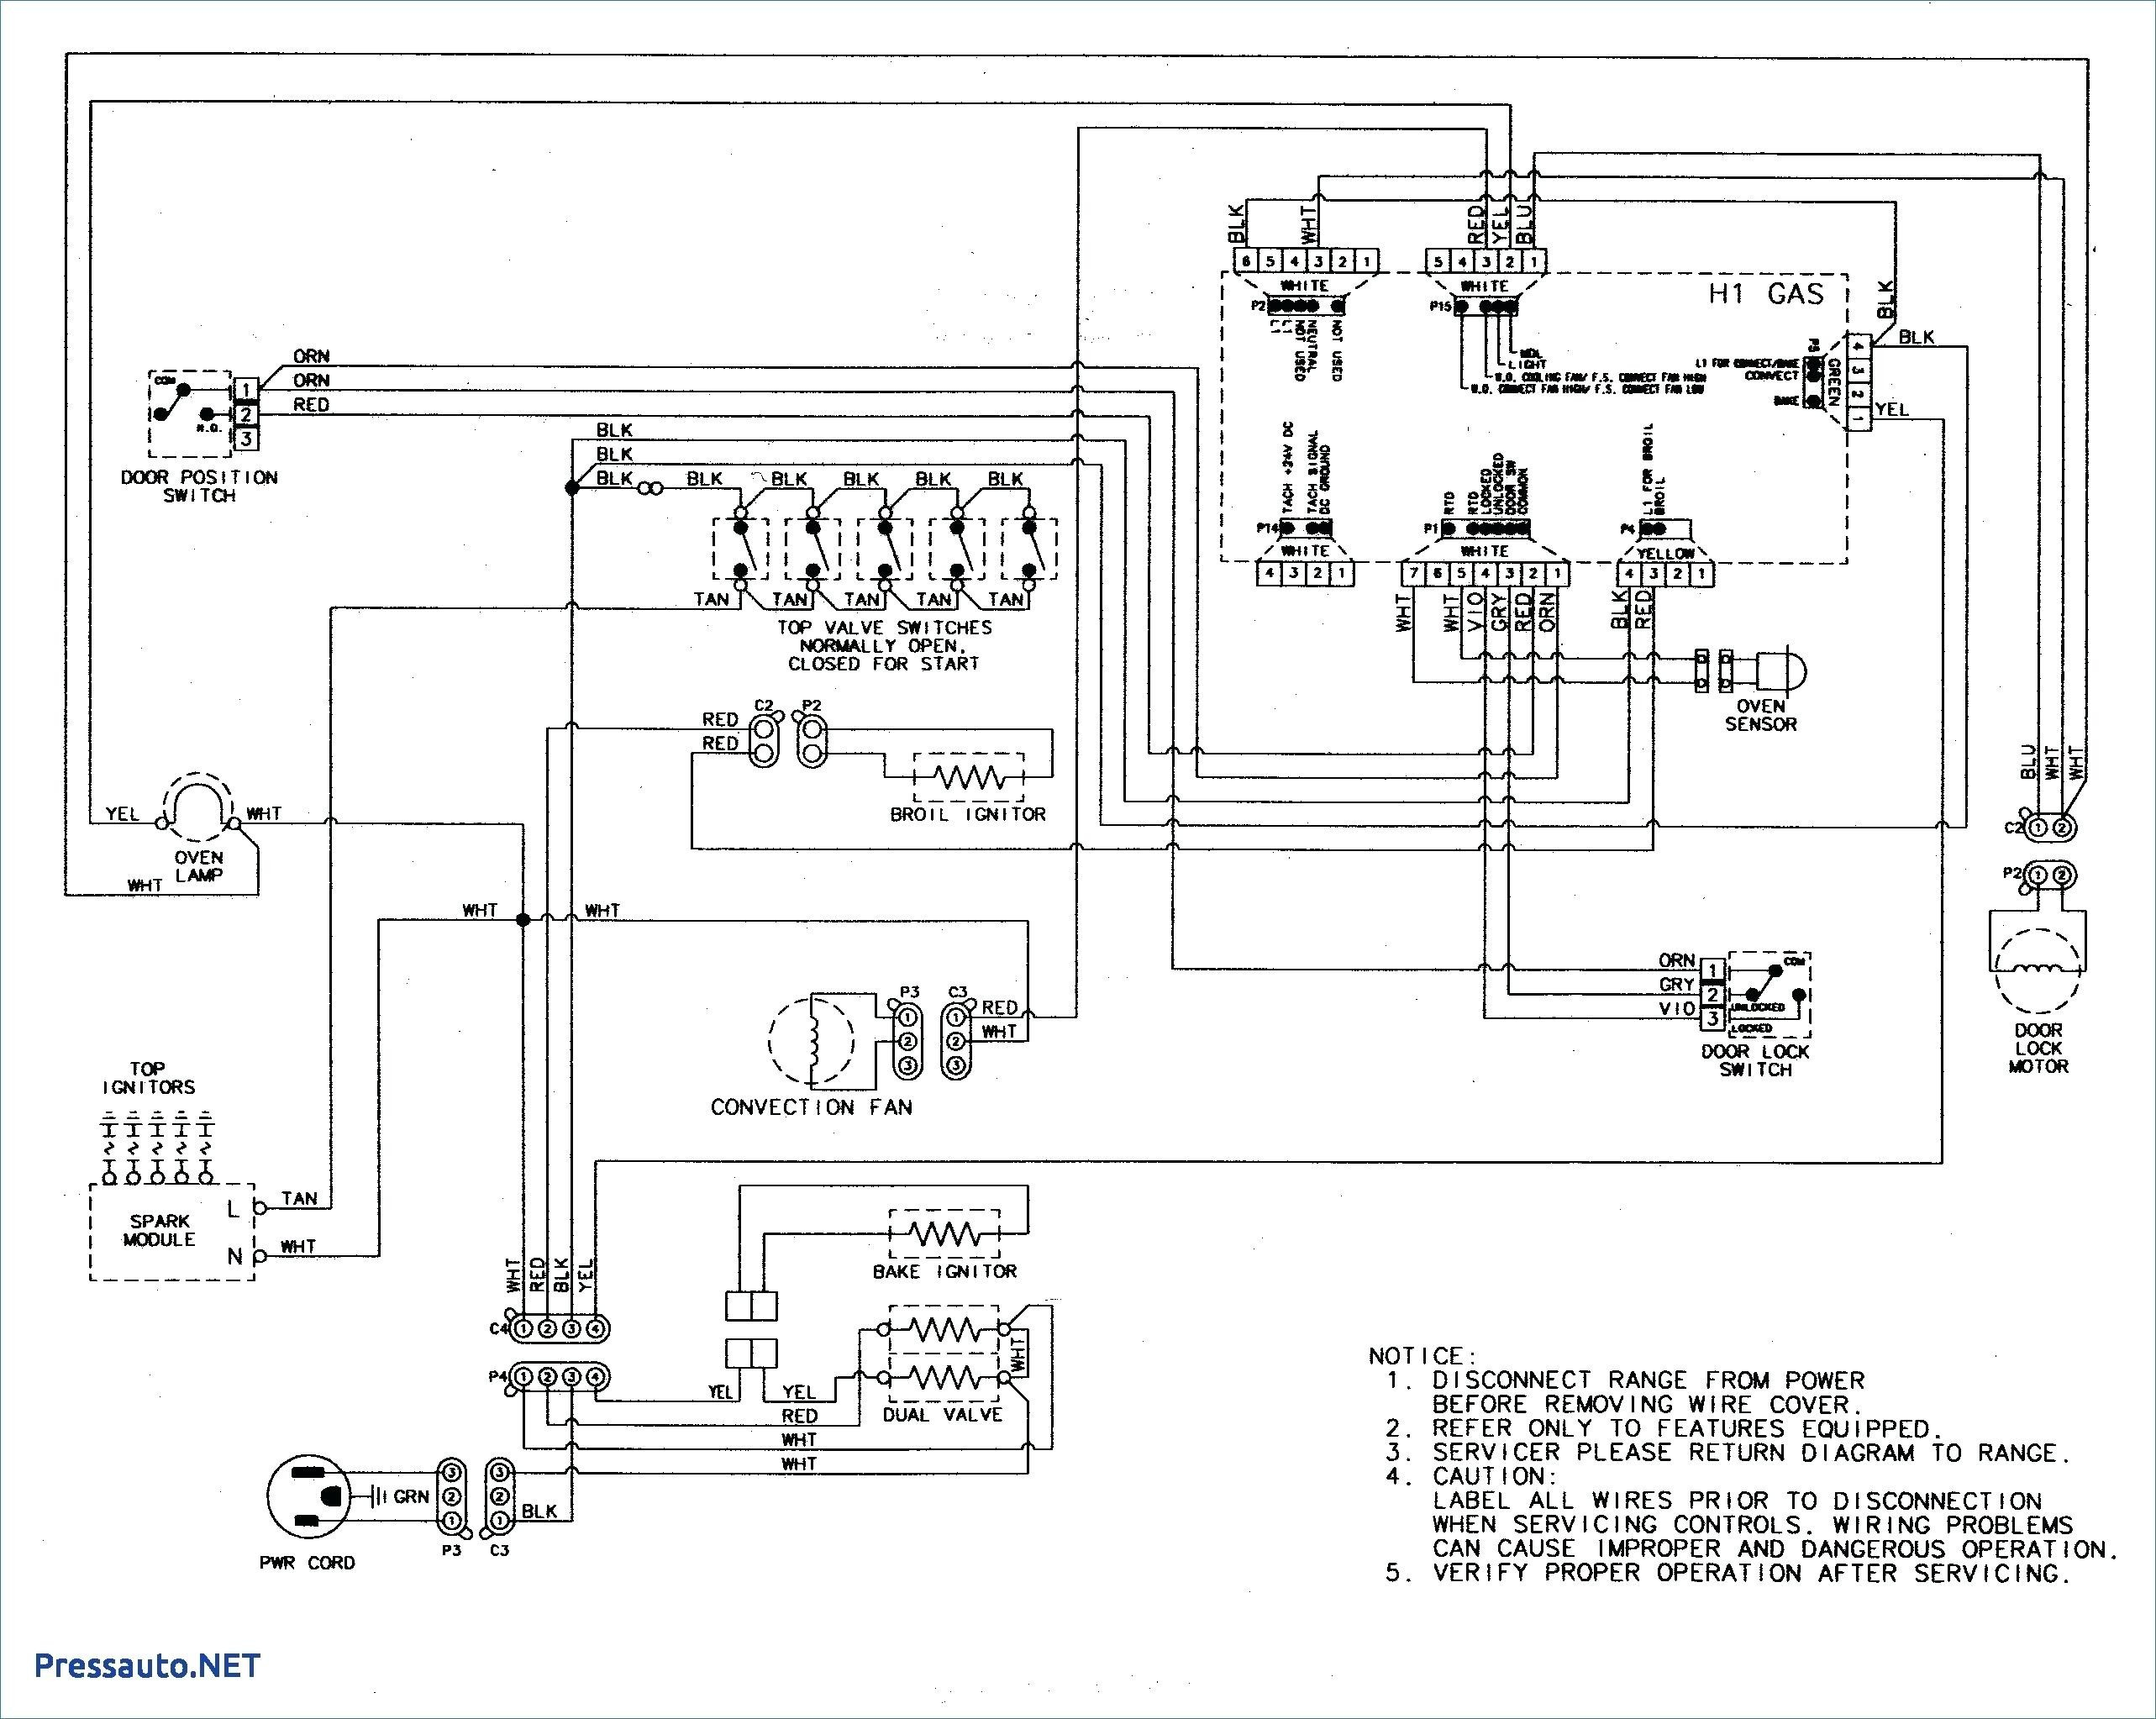 Automotive Air Conditioning Wiring Diagram